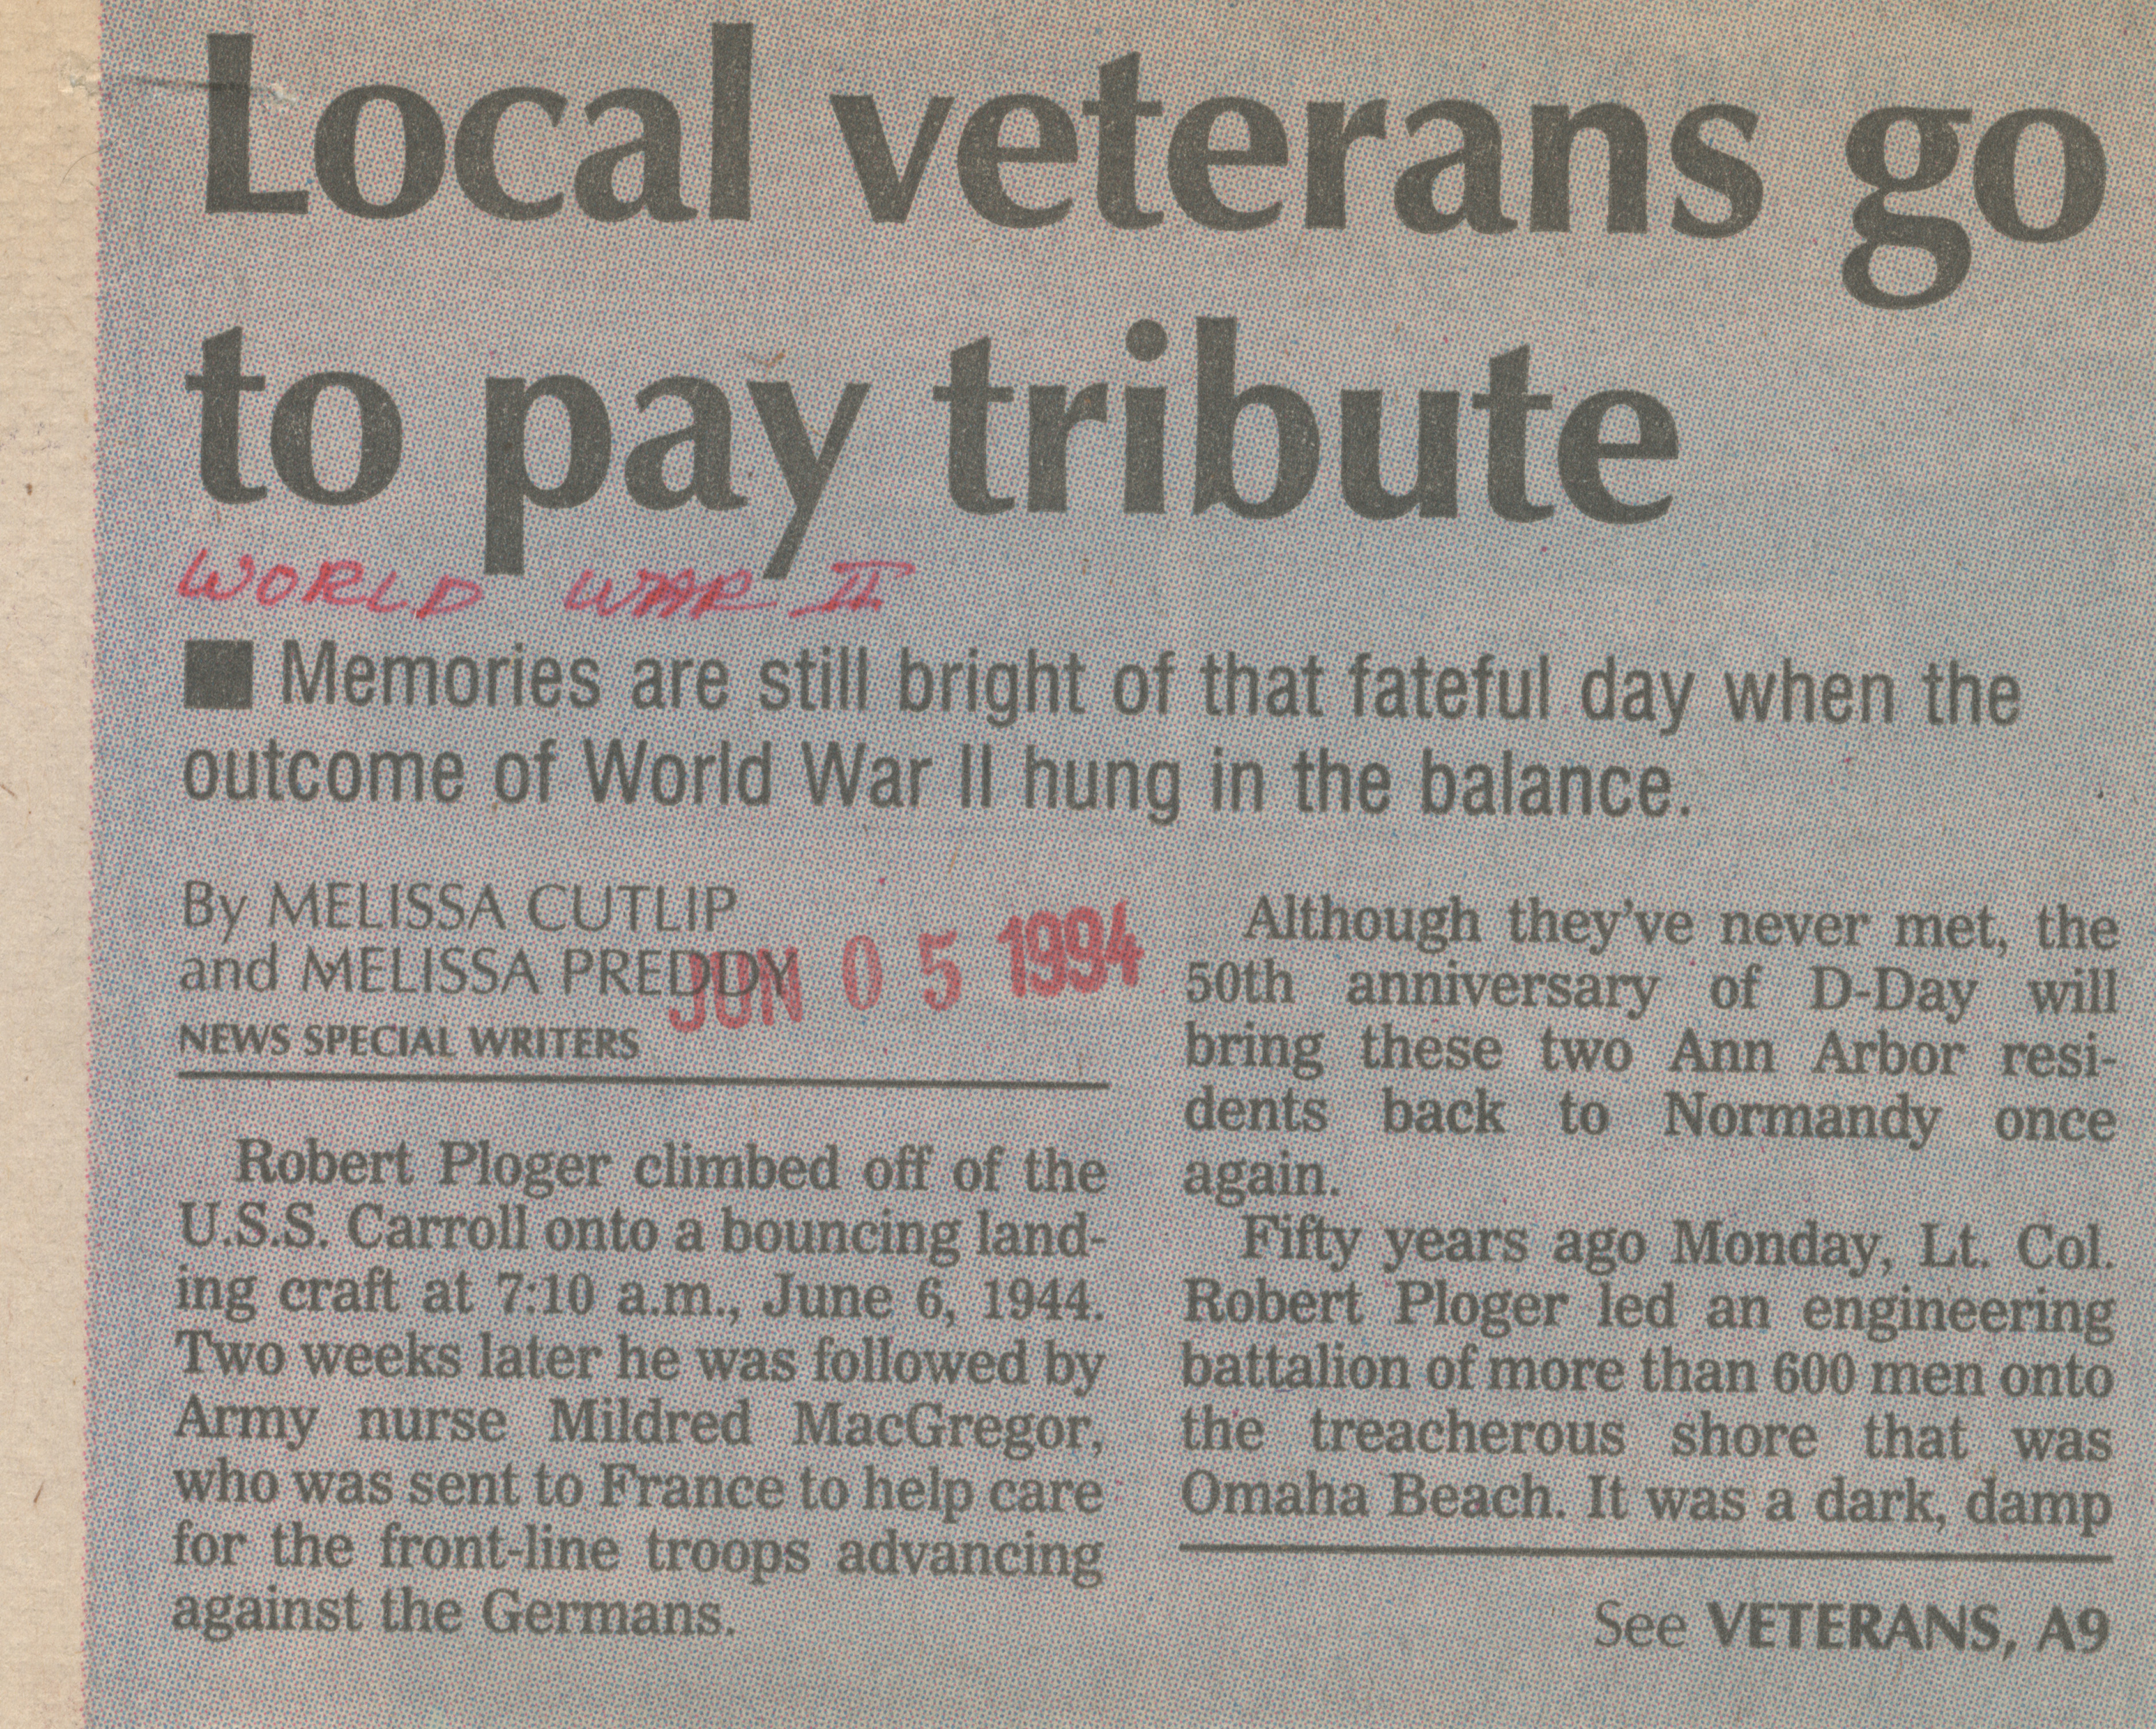 Local veterans go to pay tribute image